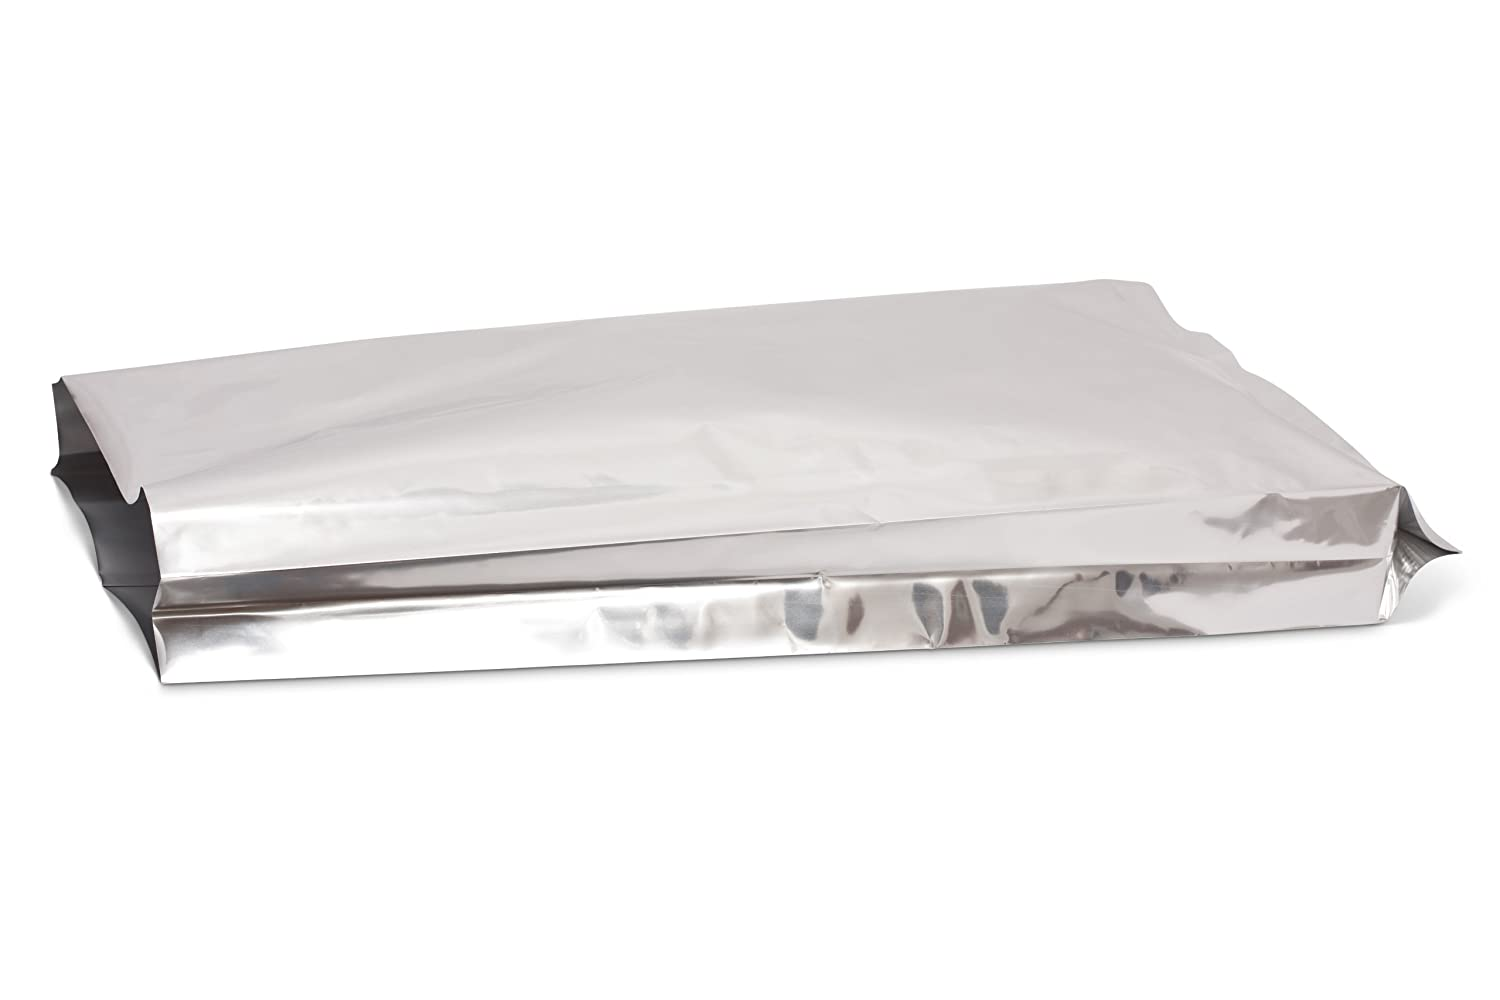 Pacific Max 66% OFF Bag 300-928N Foil Gusseted Anti lb Sales of SALE items from new works with 20 Silver